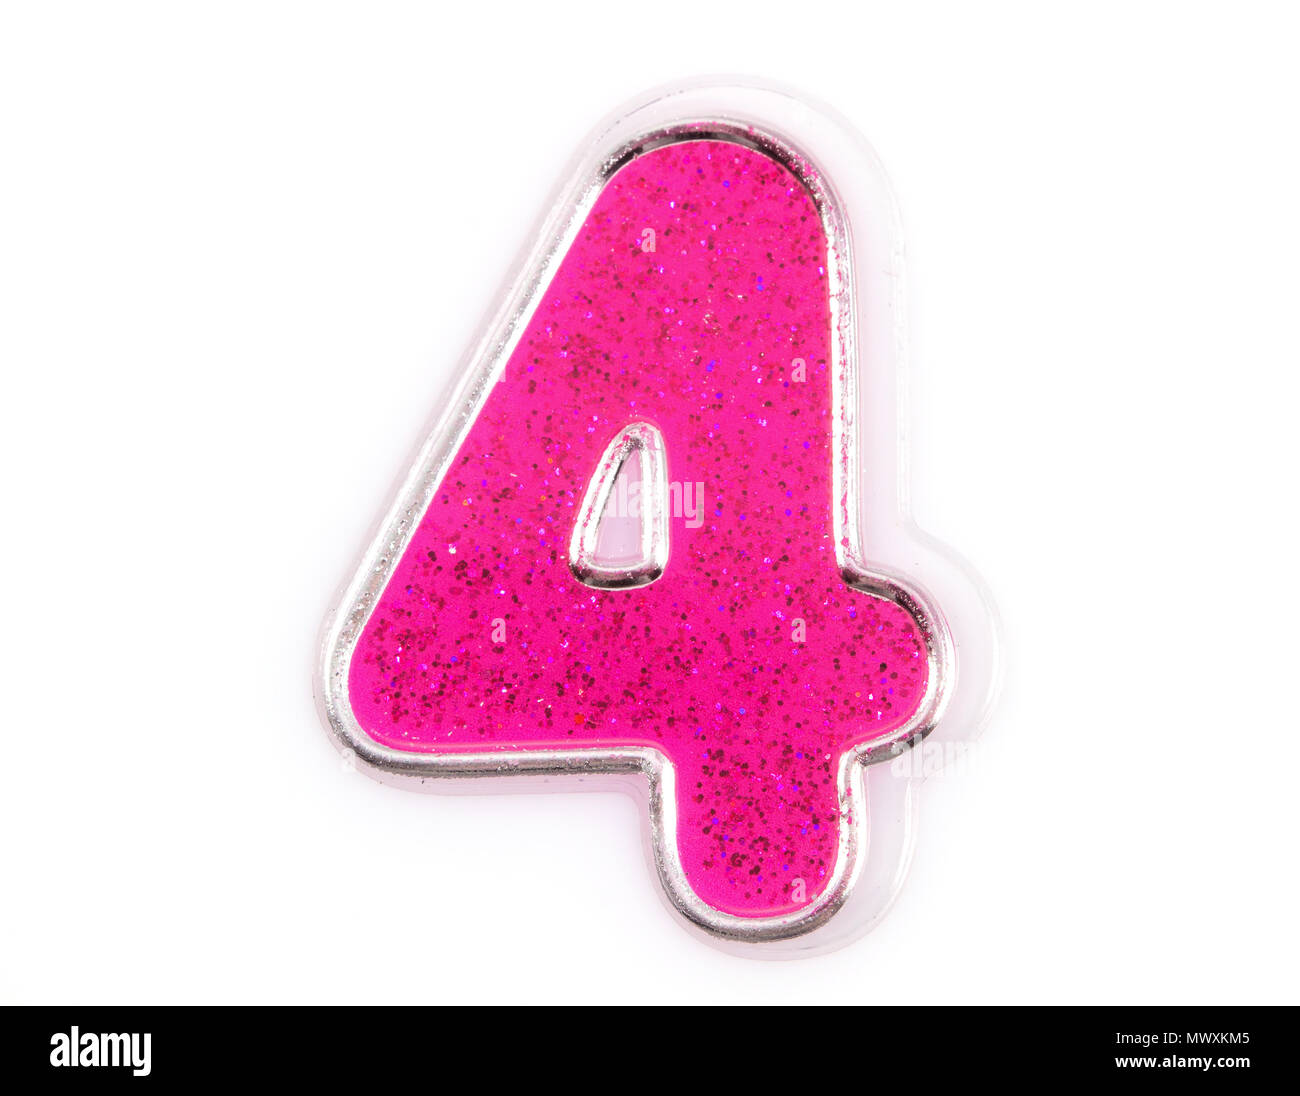 Typography 4 0 Stock Photos & Typography 4 0 Stock Images - Alamy